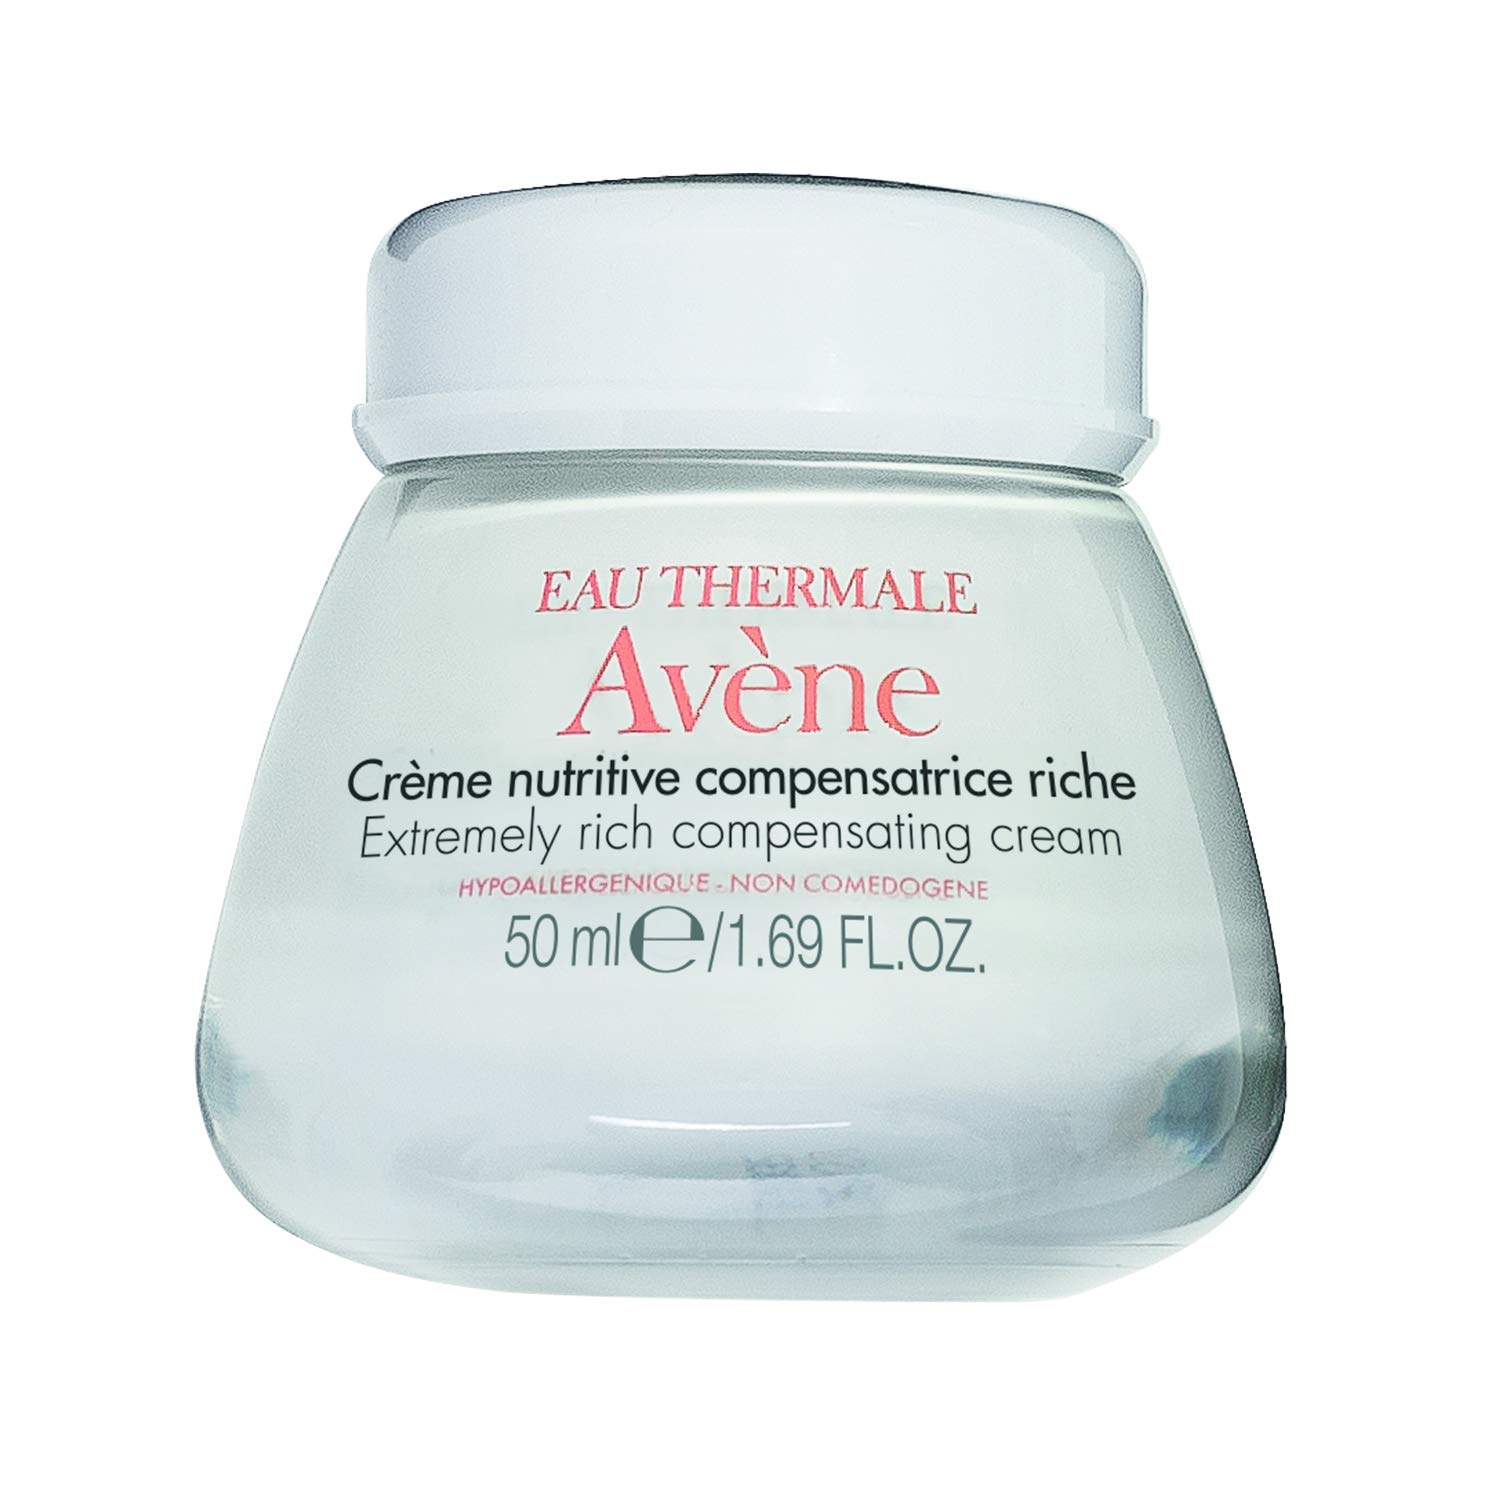 Avene Extremely Rich Compensating Cream 50ml Pierre Fabre B00EXW3WM4